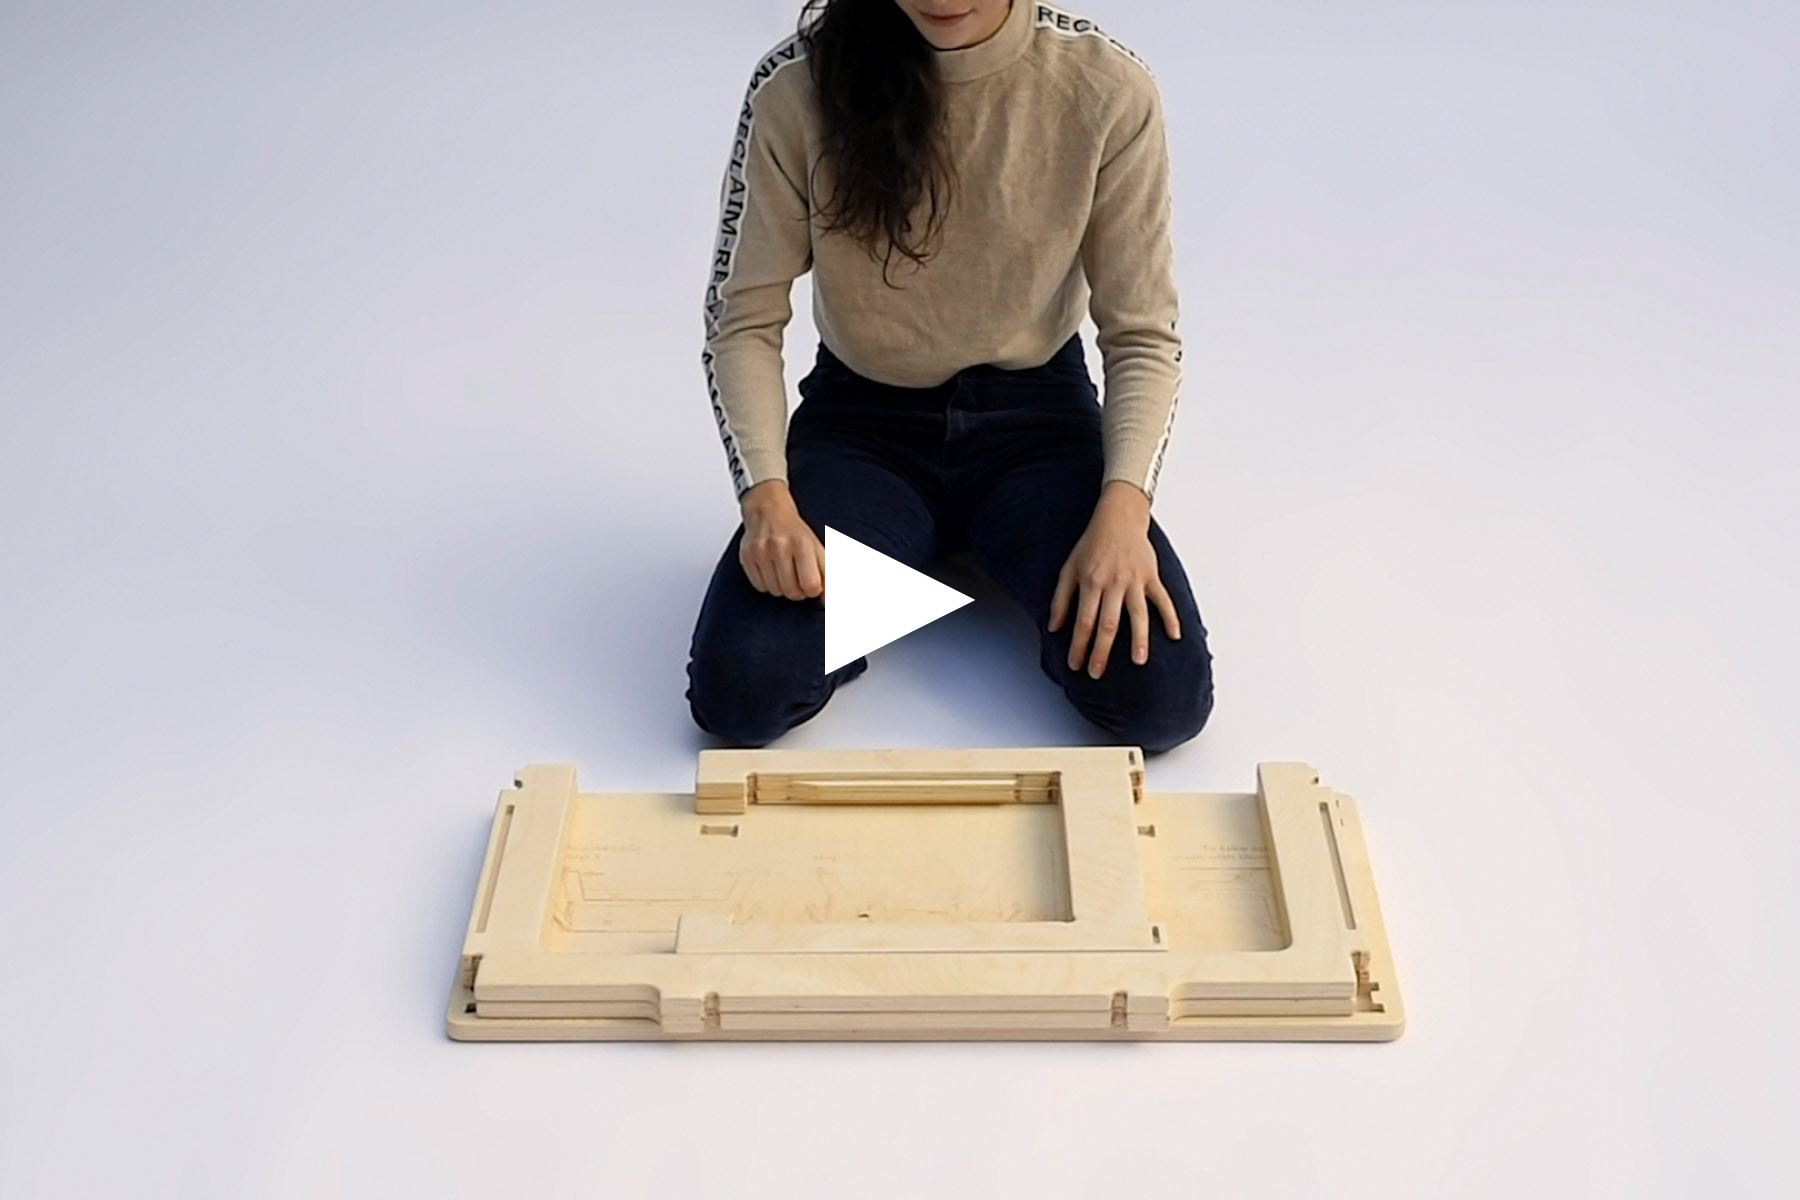 Assembling a coffee table in 30 seconds